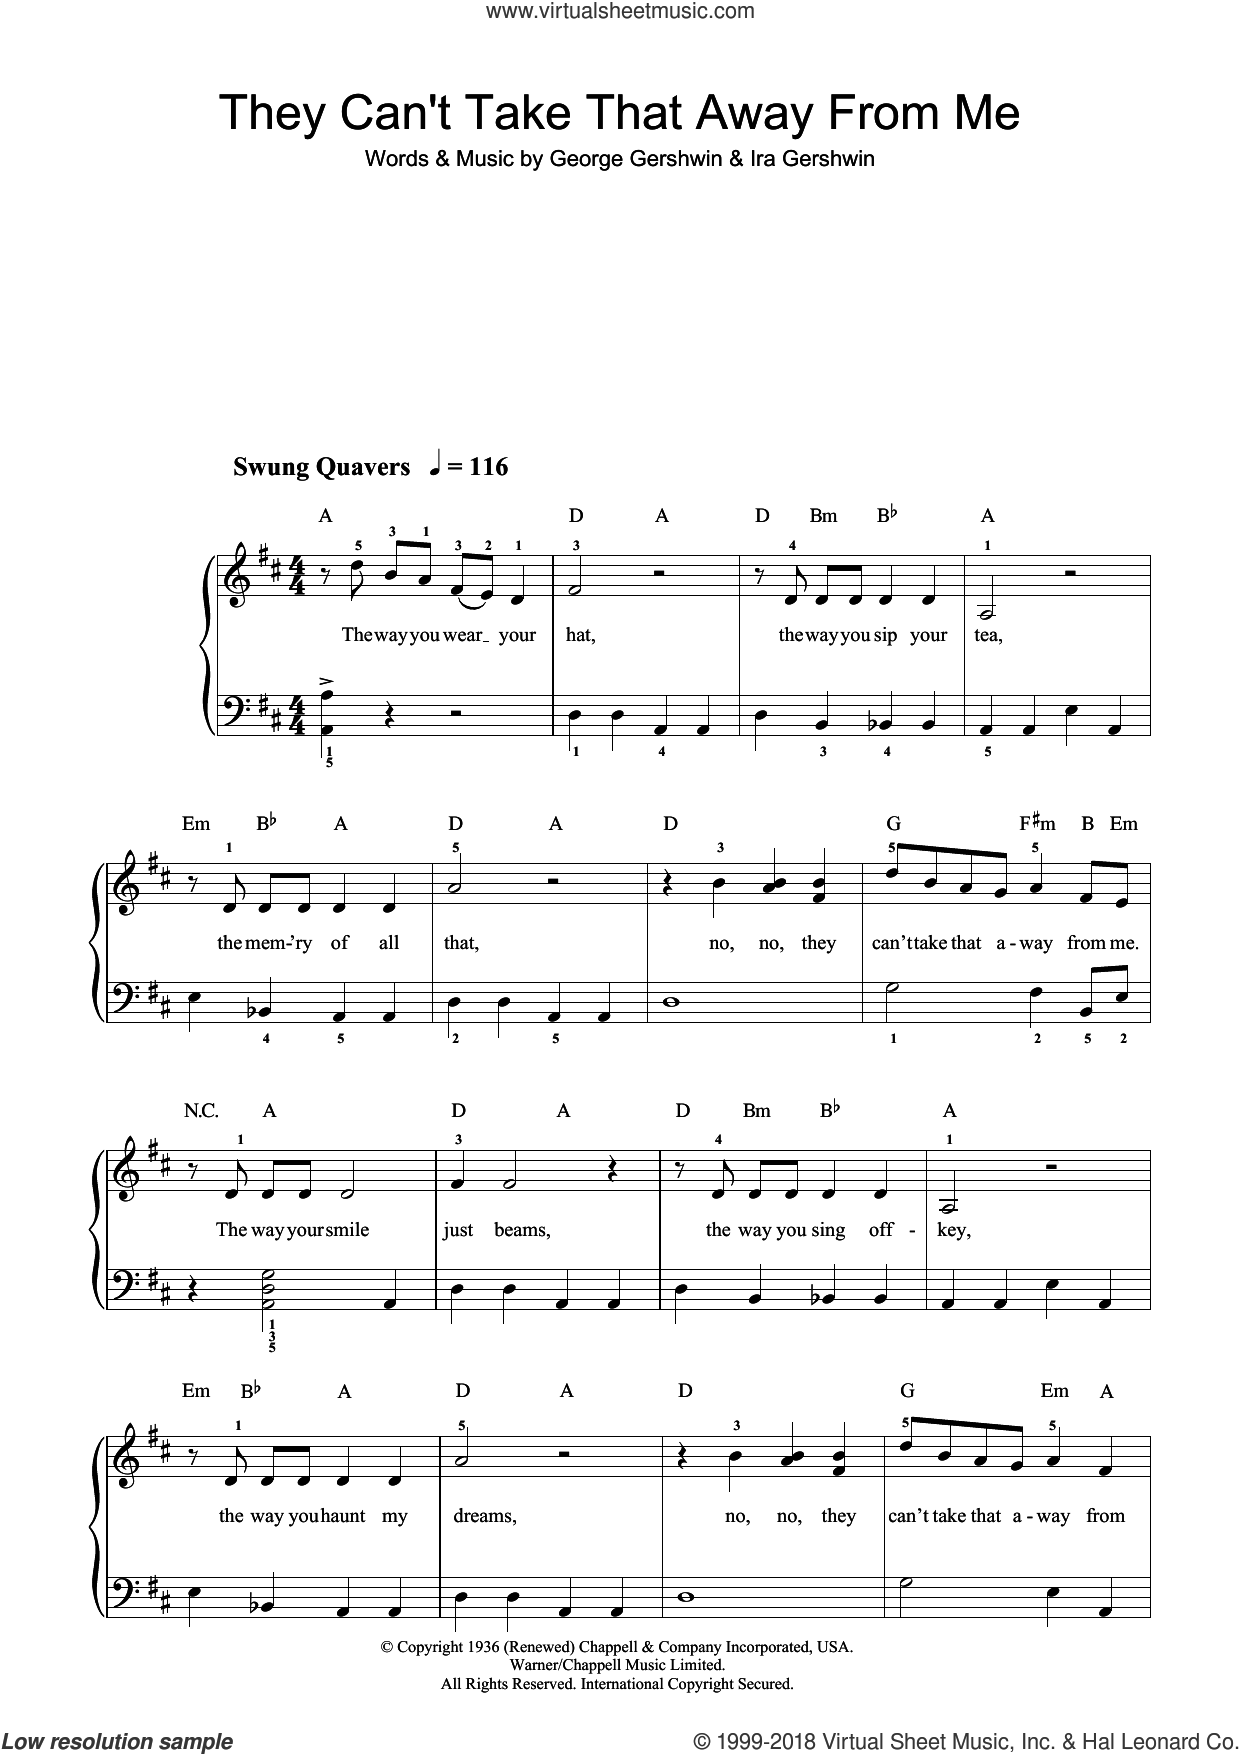 They Can't Take That Away From Me sheet music for piano solo by George Gershwin and Ira Gershwin, easy skill level